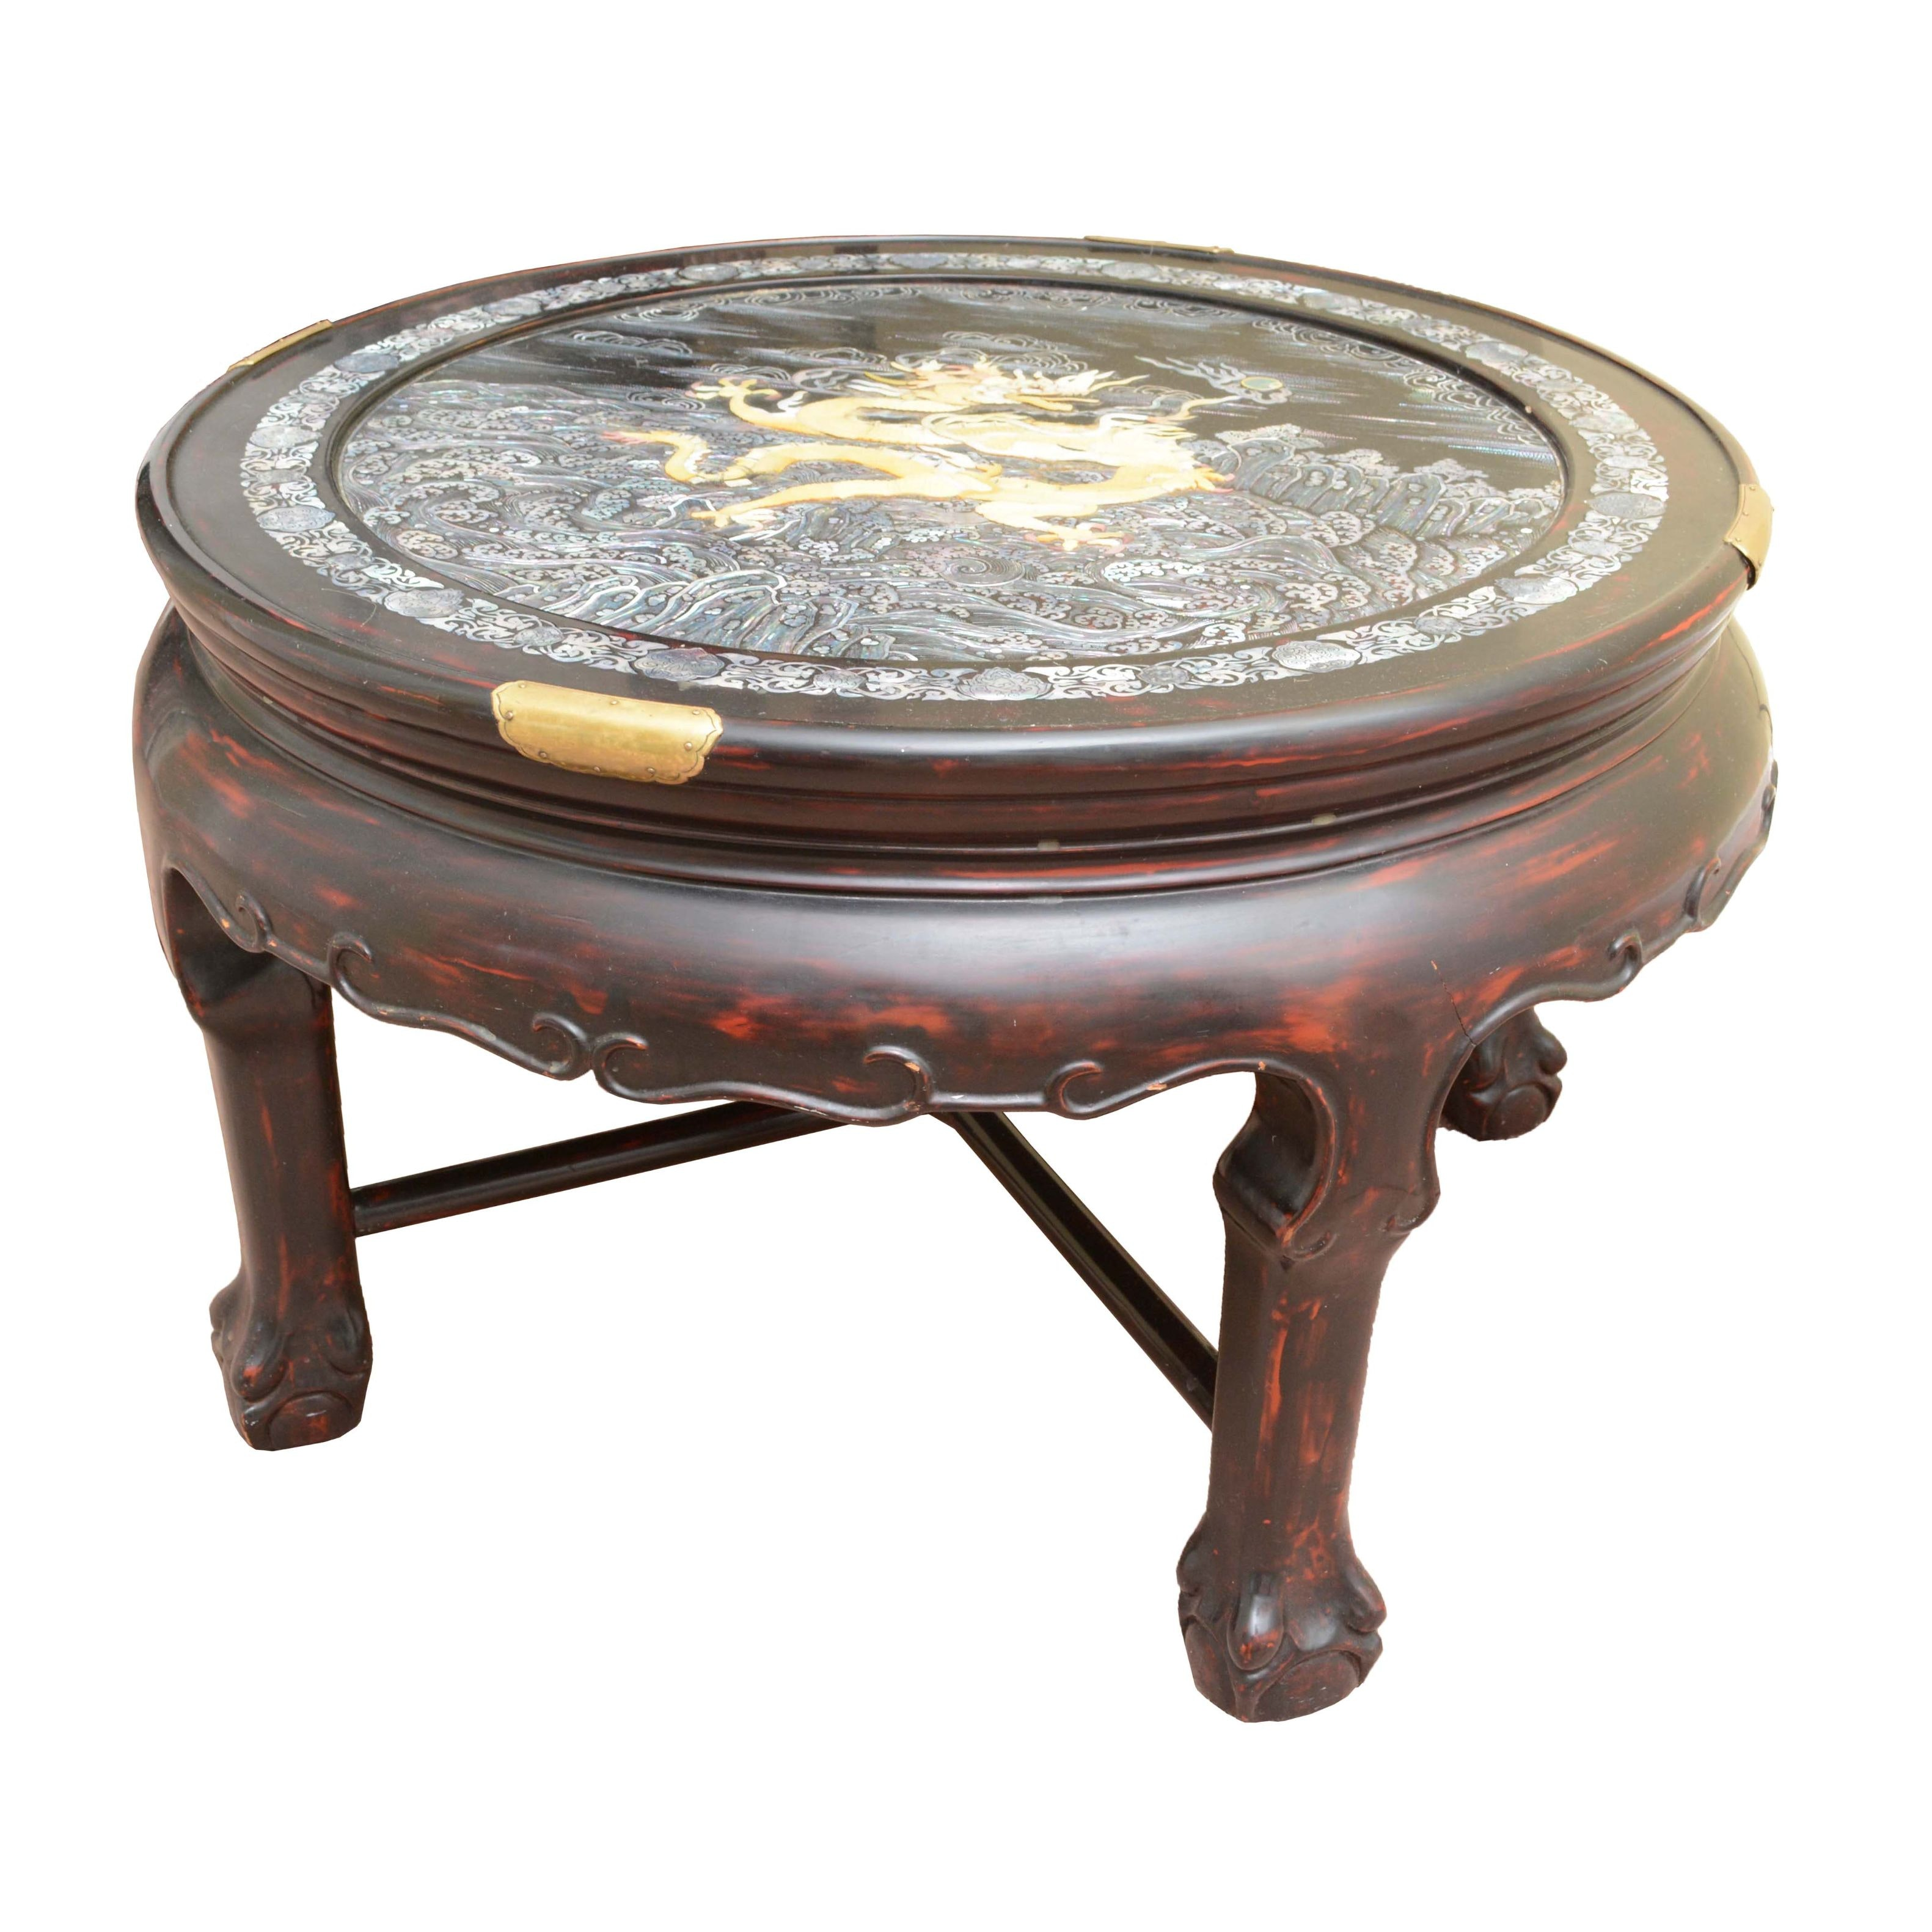 Vintage Asian Style Accent Table with Mother of Pearl Inlay